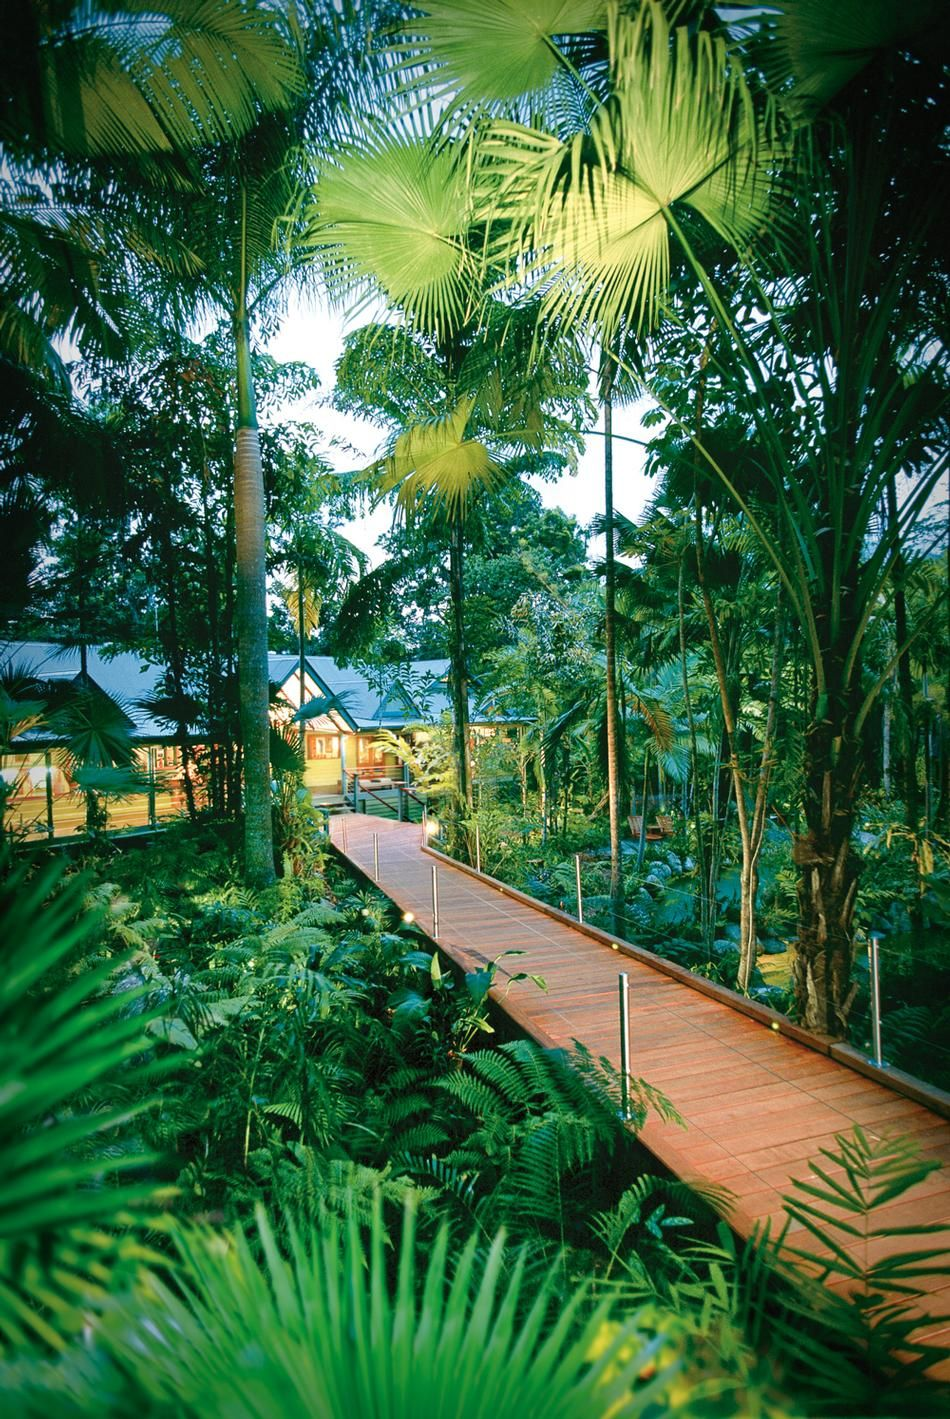 Australian rainforest at Silky Oaks Lodge, located next to